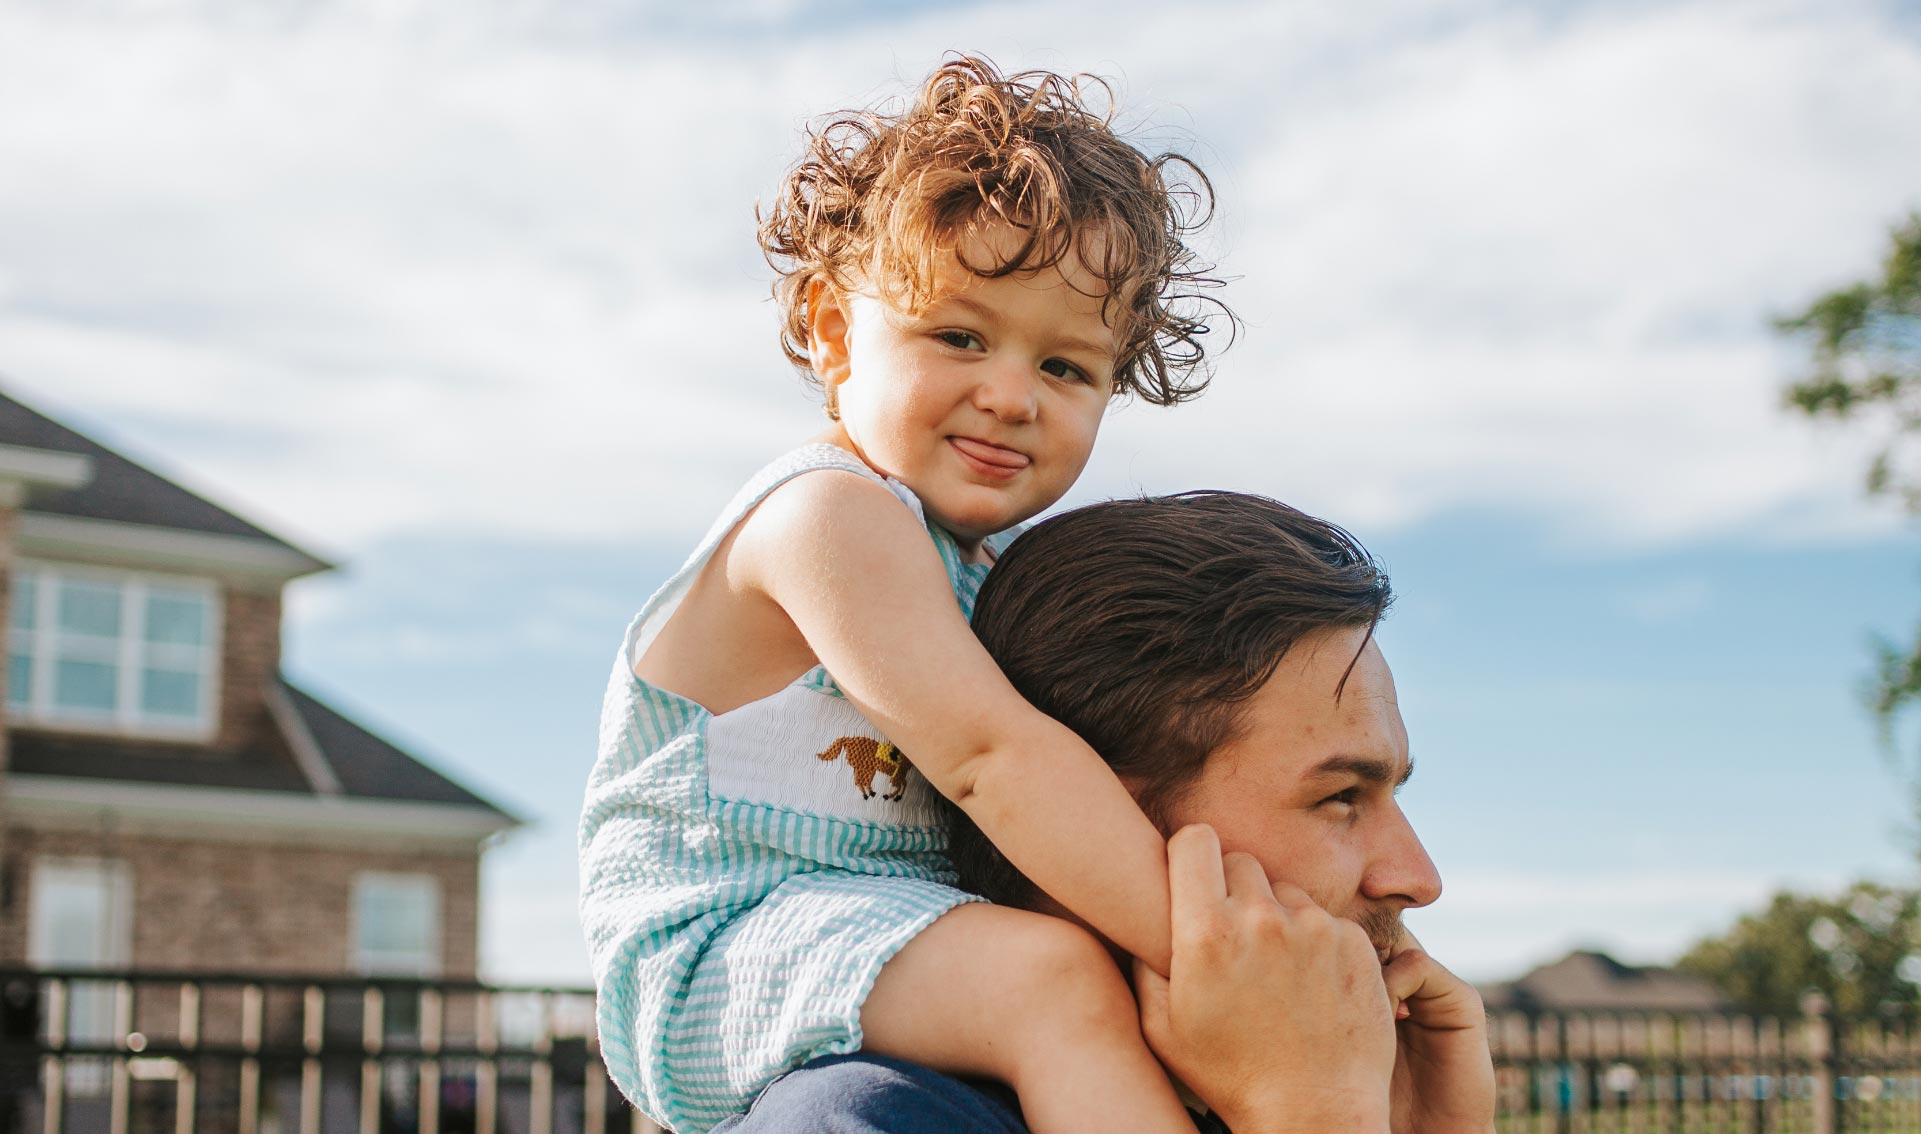 A close-up photo of Charlie sticking his tongue out while he sits on his dad's shoulders. His dad holds onto his hands.